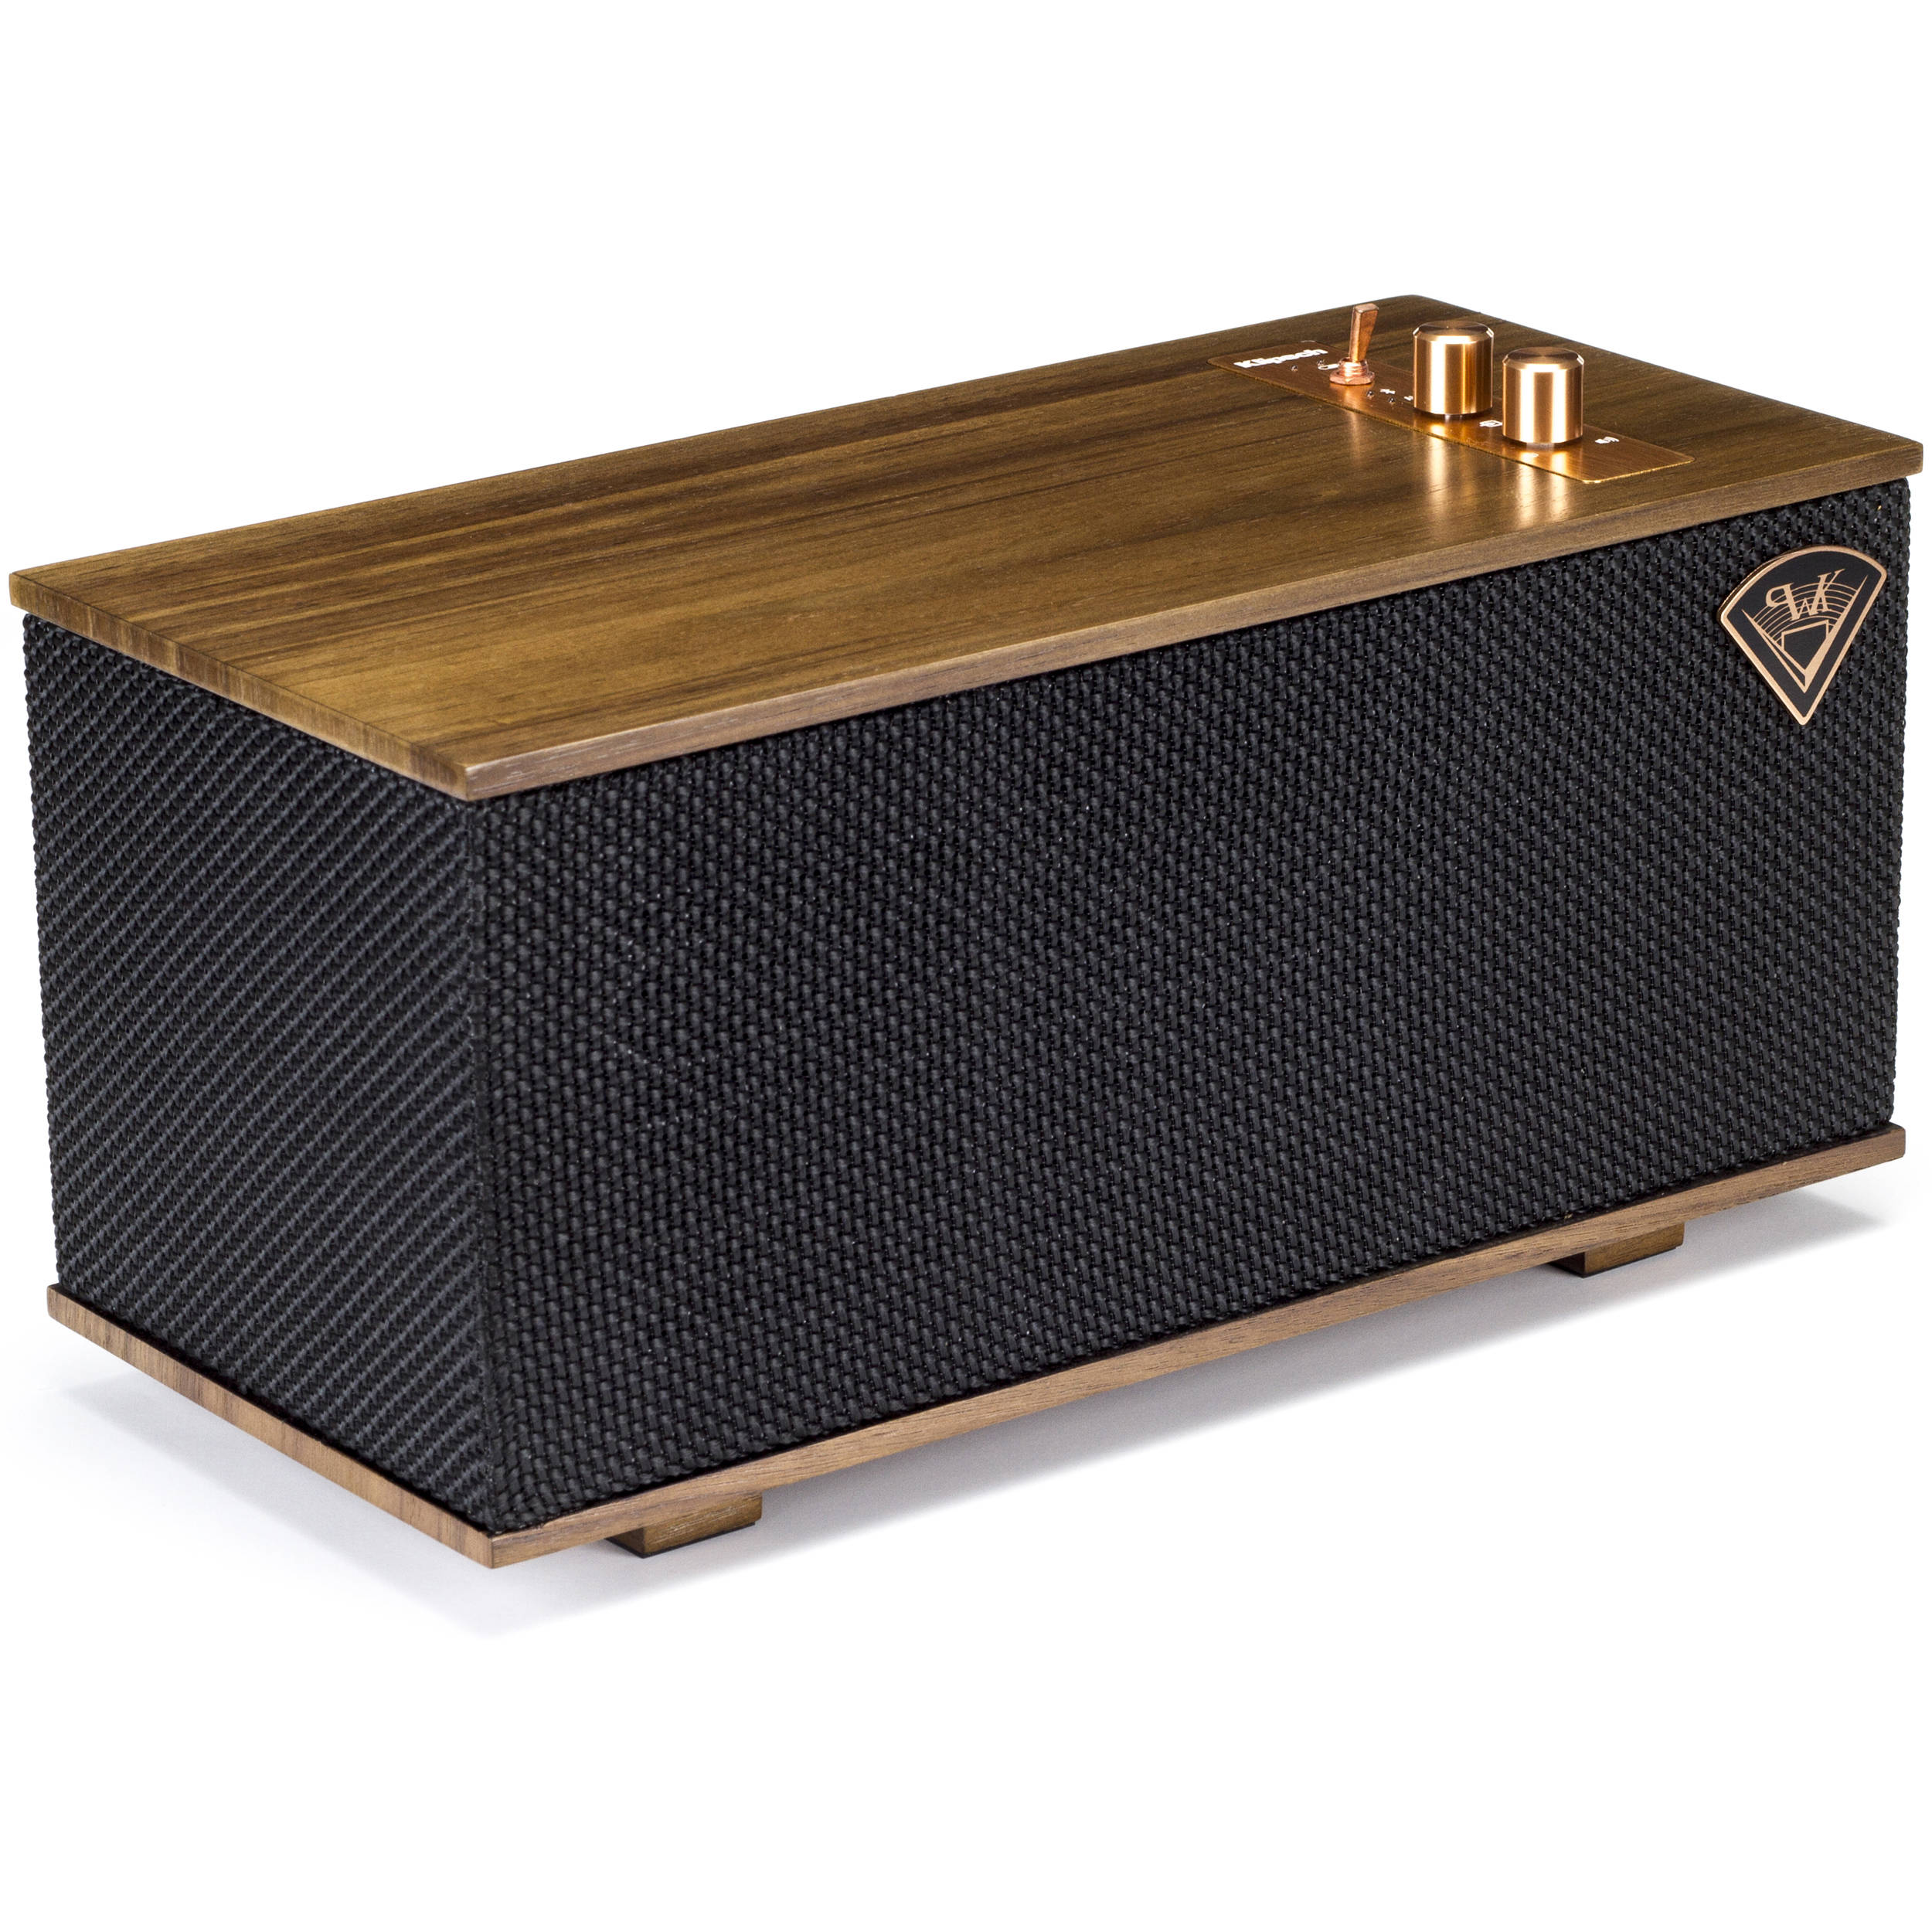 klipsch bluetooth speaker how to connect